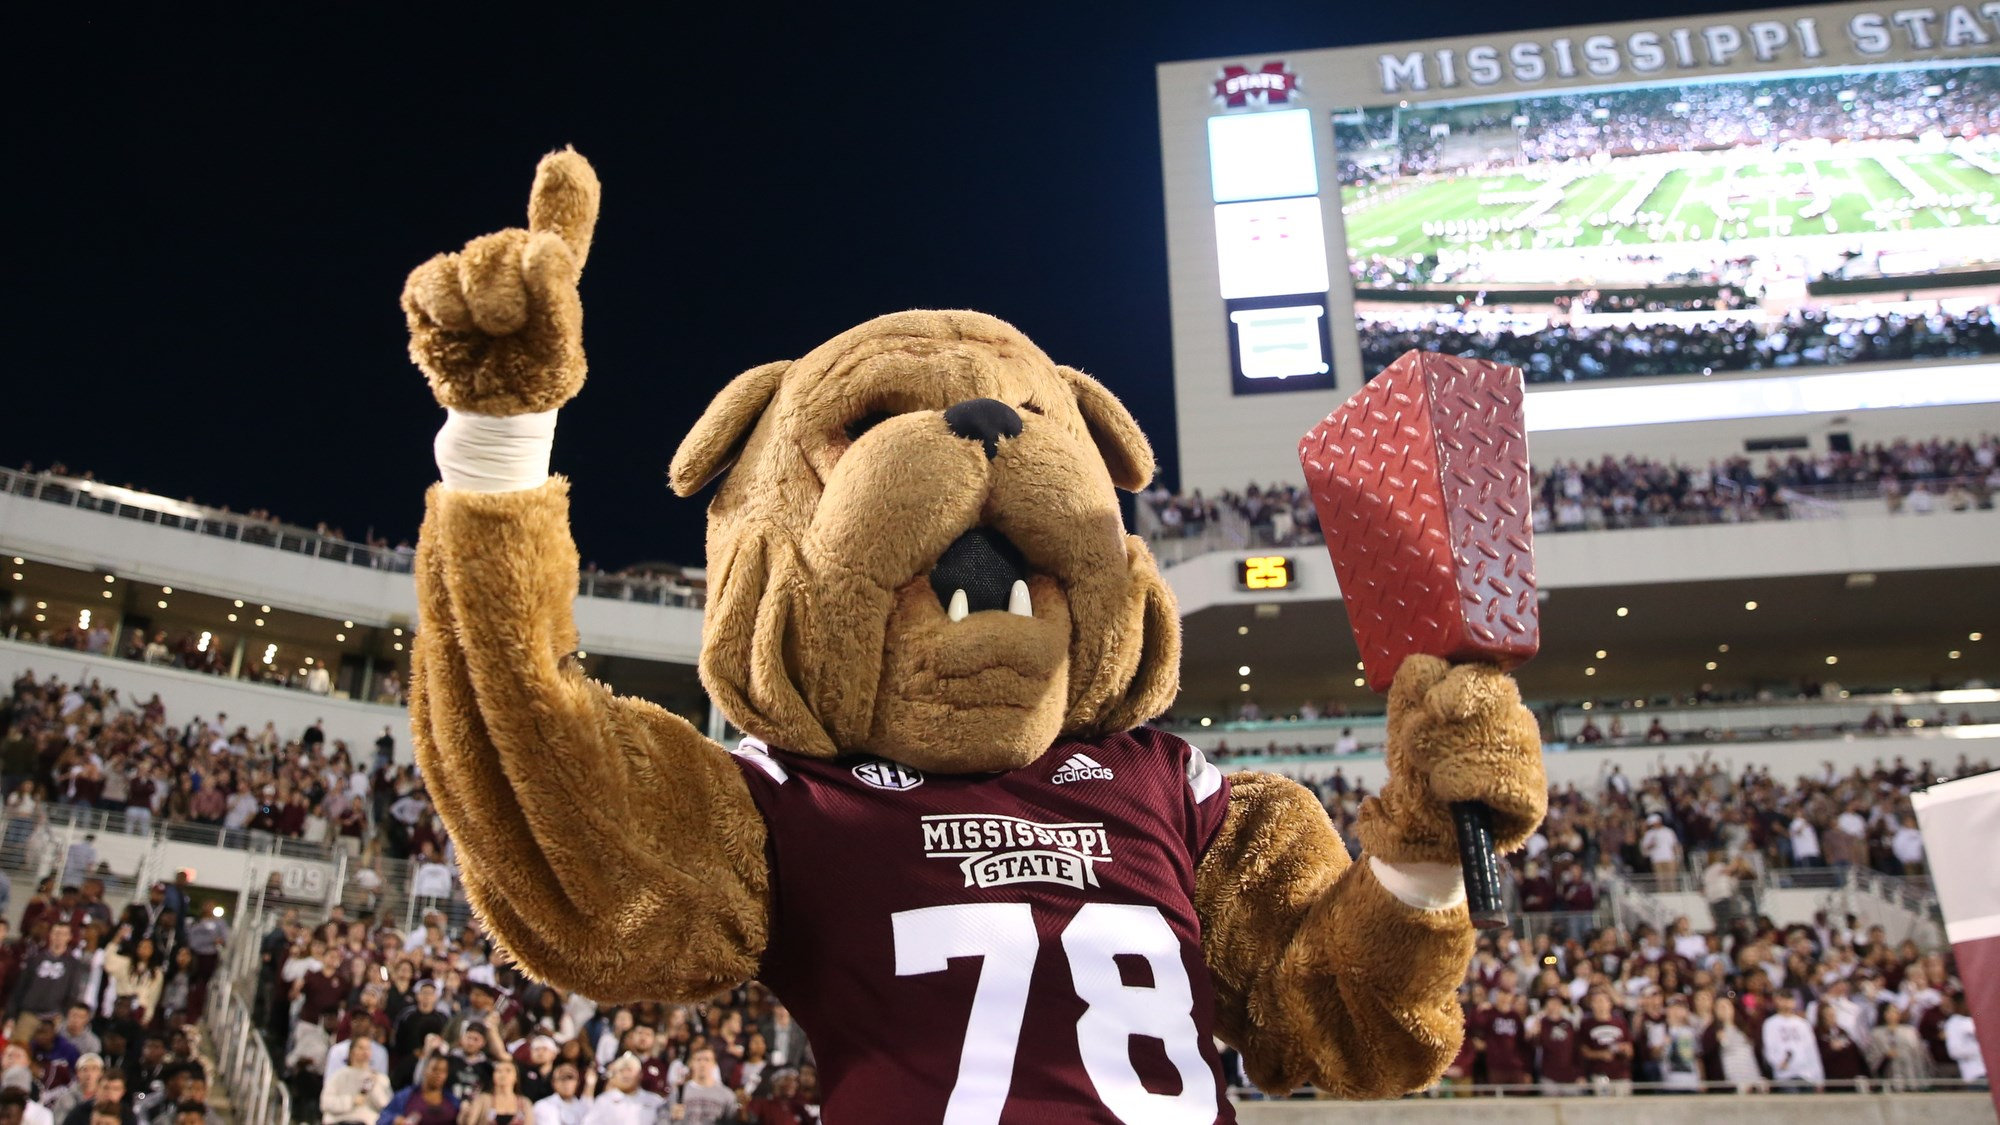 MSU Partners with Dyehard To Create New Merchandising Program - Mississippi State